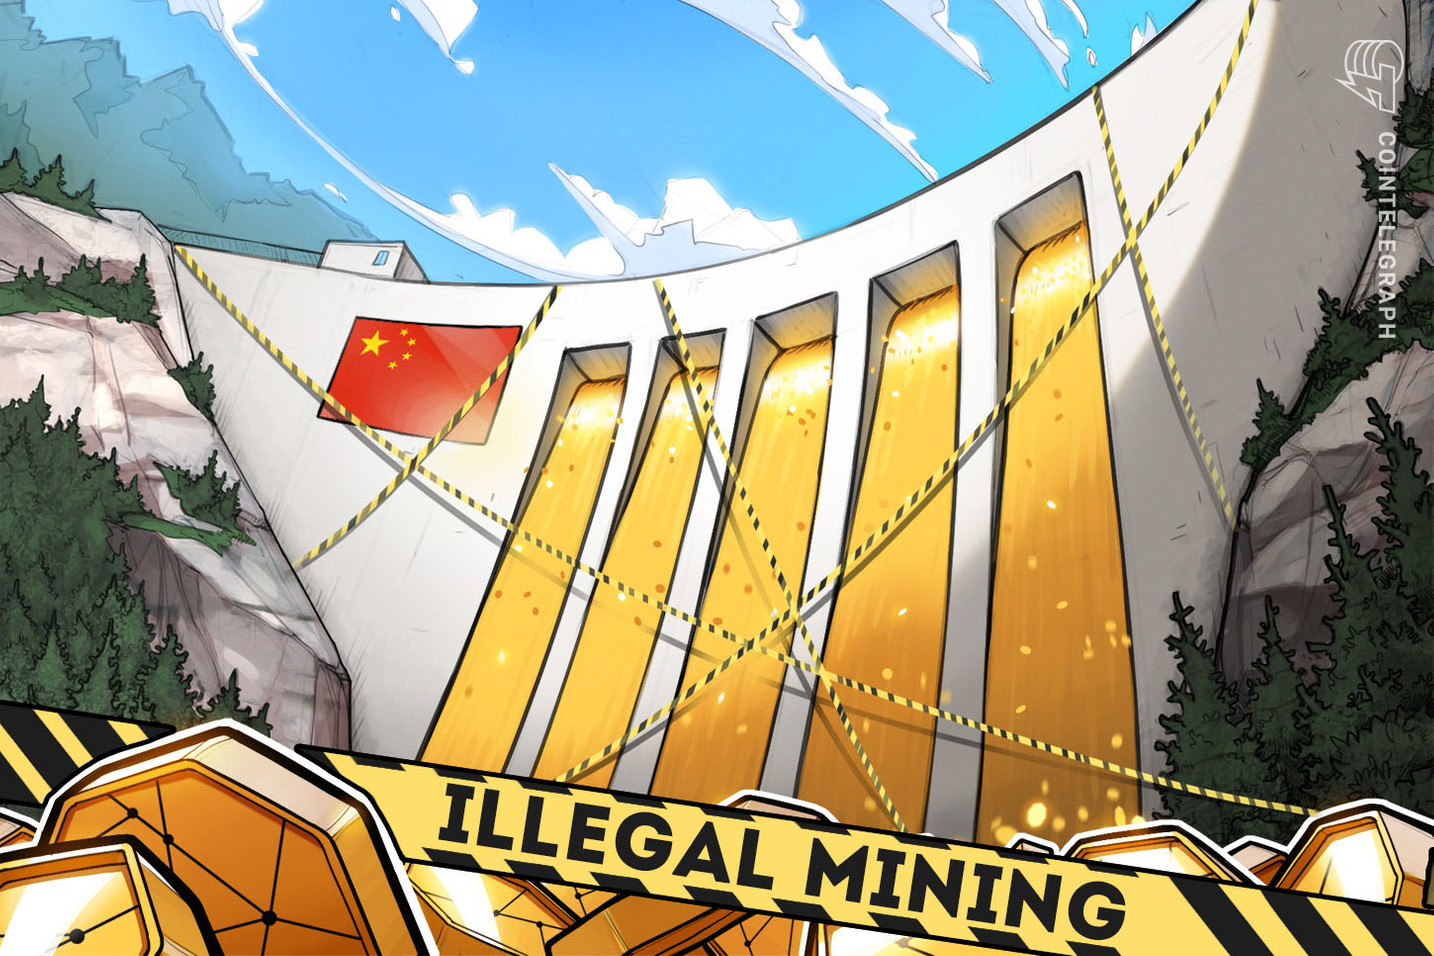 Chinese Authorities to Investigate Illegal Mining Farms at 'Global Mining Capital' Sichuan